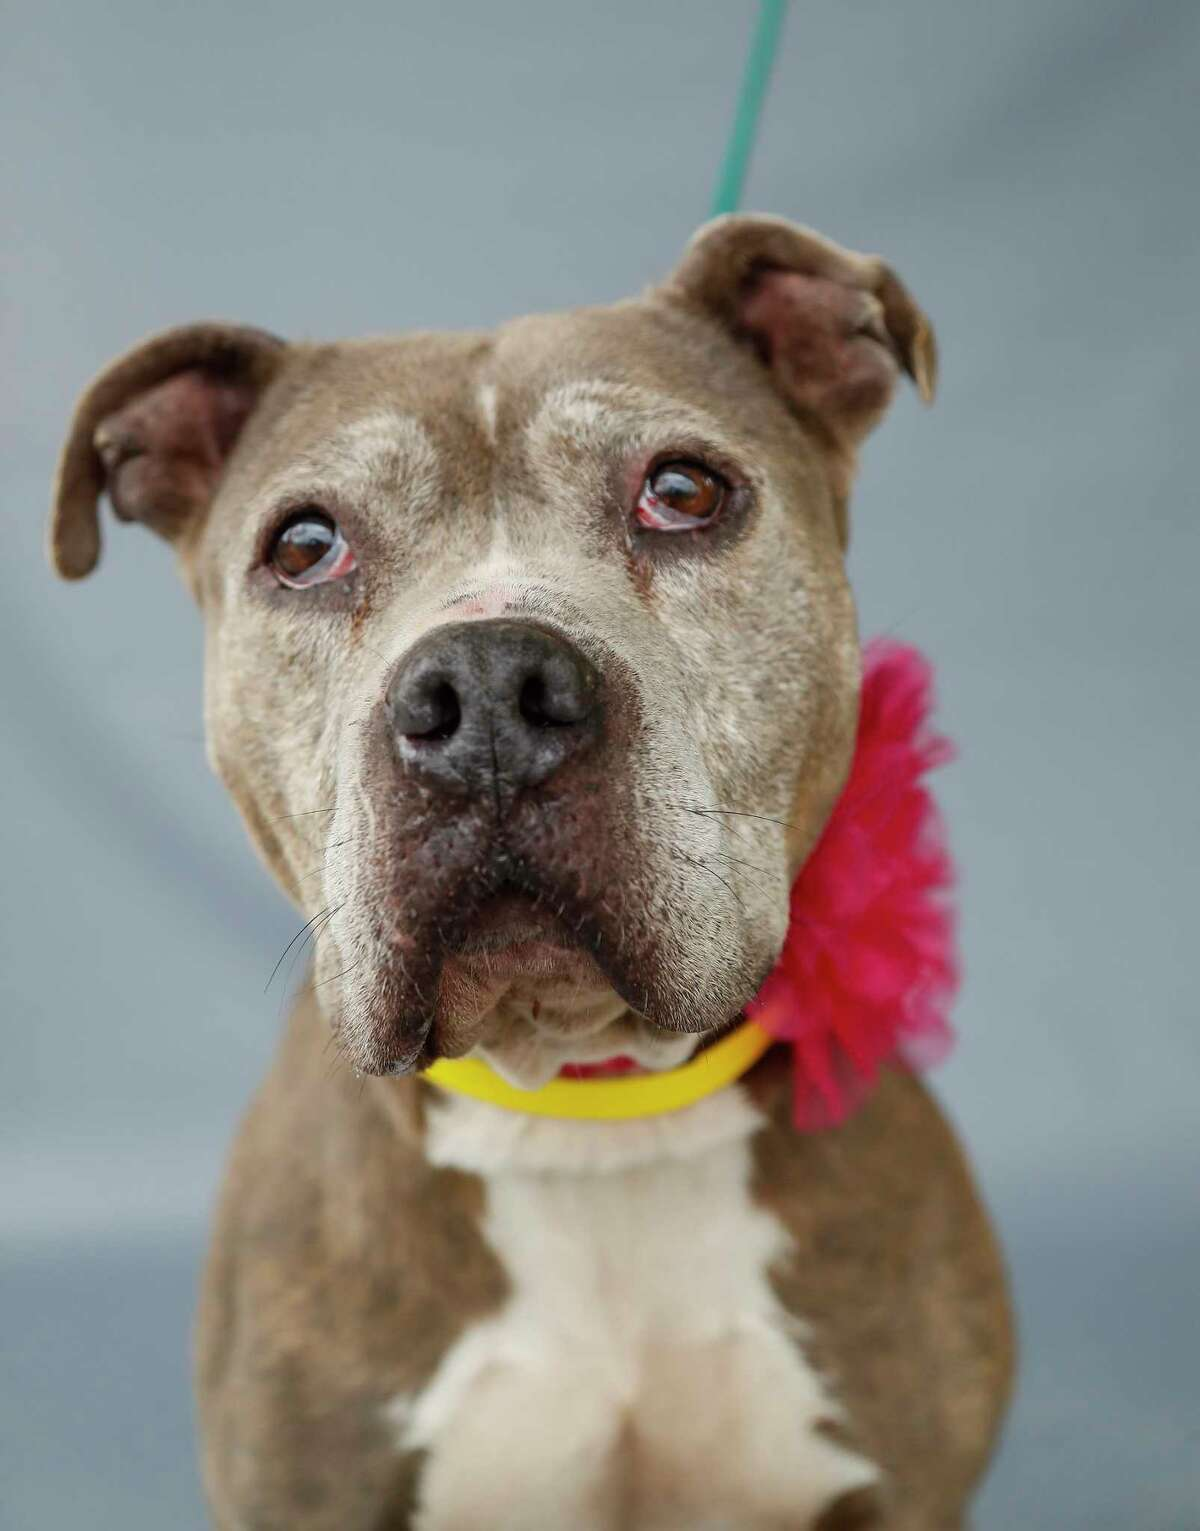 Petunia (A552842) is a 7-year-old, female, brindle/white Pit Bull mix available for adoption from the Harris County Animal Shelter in Houston,Thursday, April 2, 2020. Petunia is a sweet girl with the most adorable face. She loves treats and being loved on. She was brought in as one of seven pets that were received by the shelter on March 27 after their owner was arrested on criminal charges unrelated to animal cruelty. She is among many of the larger, older dogs at the shelter that are in need of temporary or forever homes. She is a healthy, good-natured dog that is available for adoption and in need of a responsible pet-lover, who has the capacity to care for her.